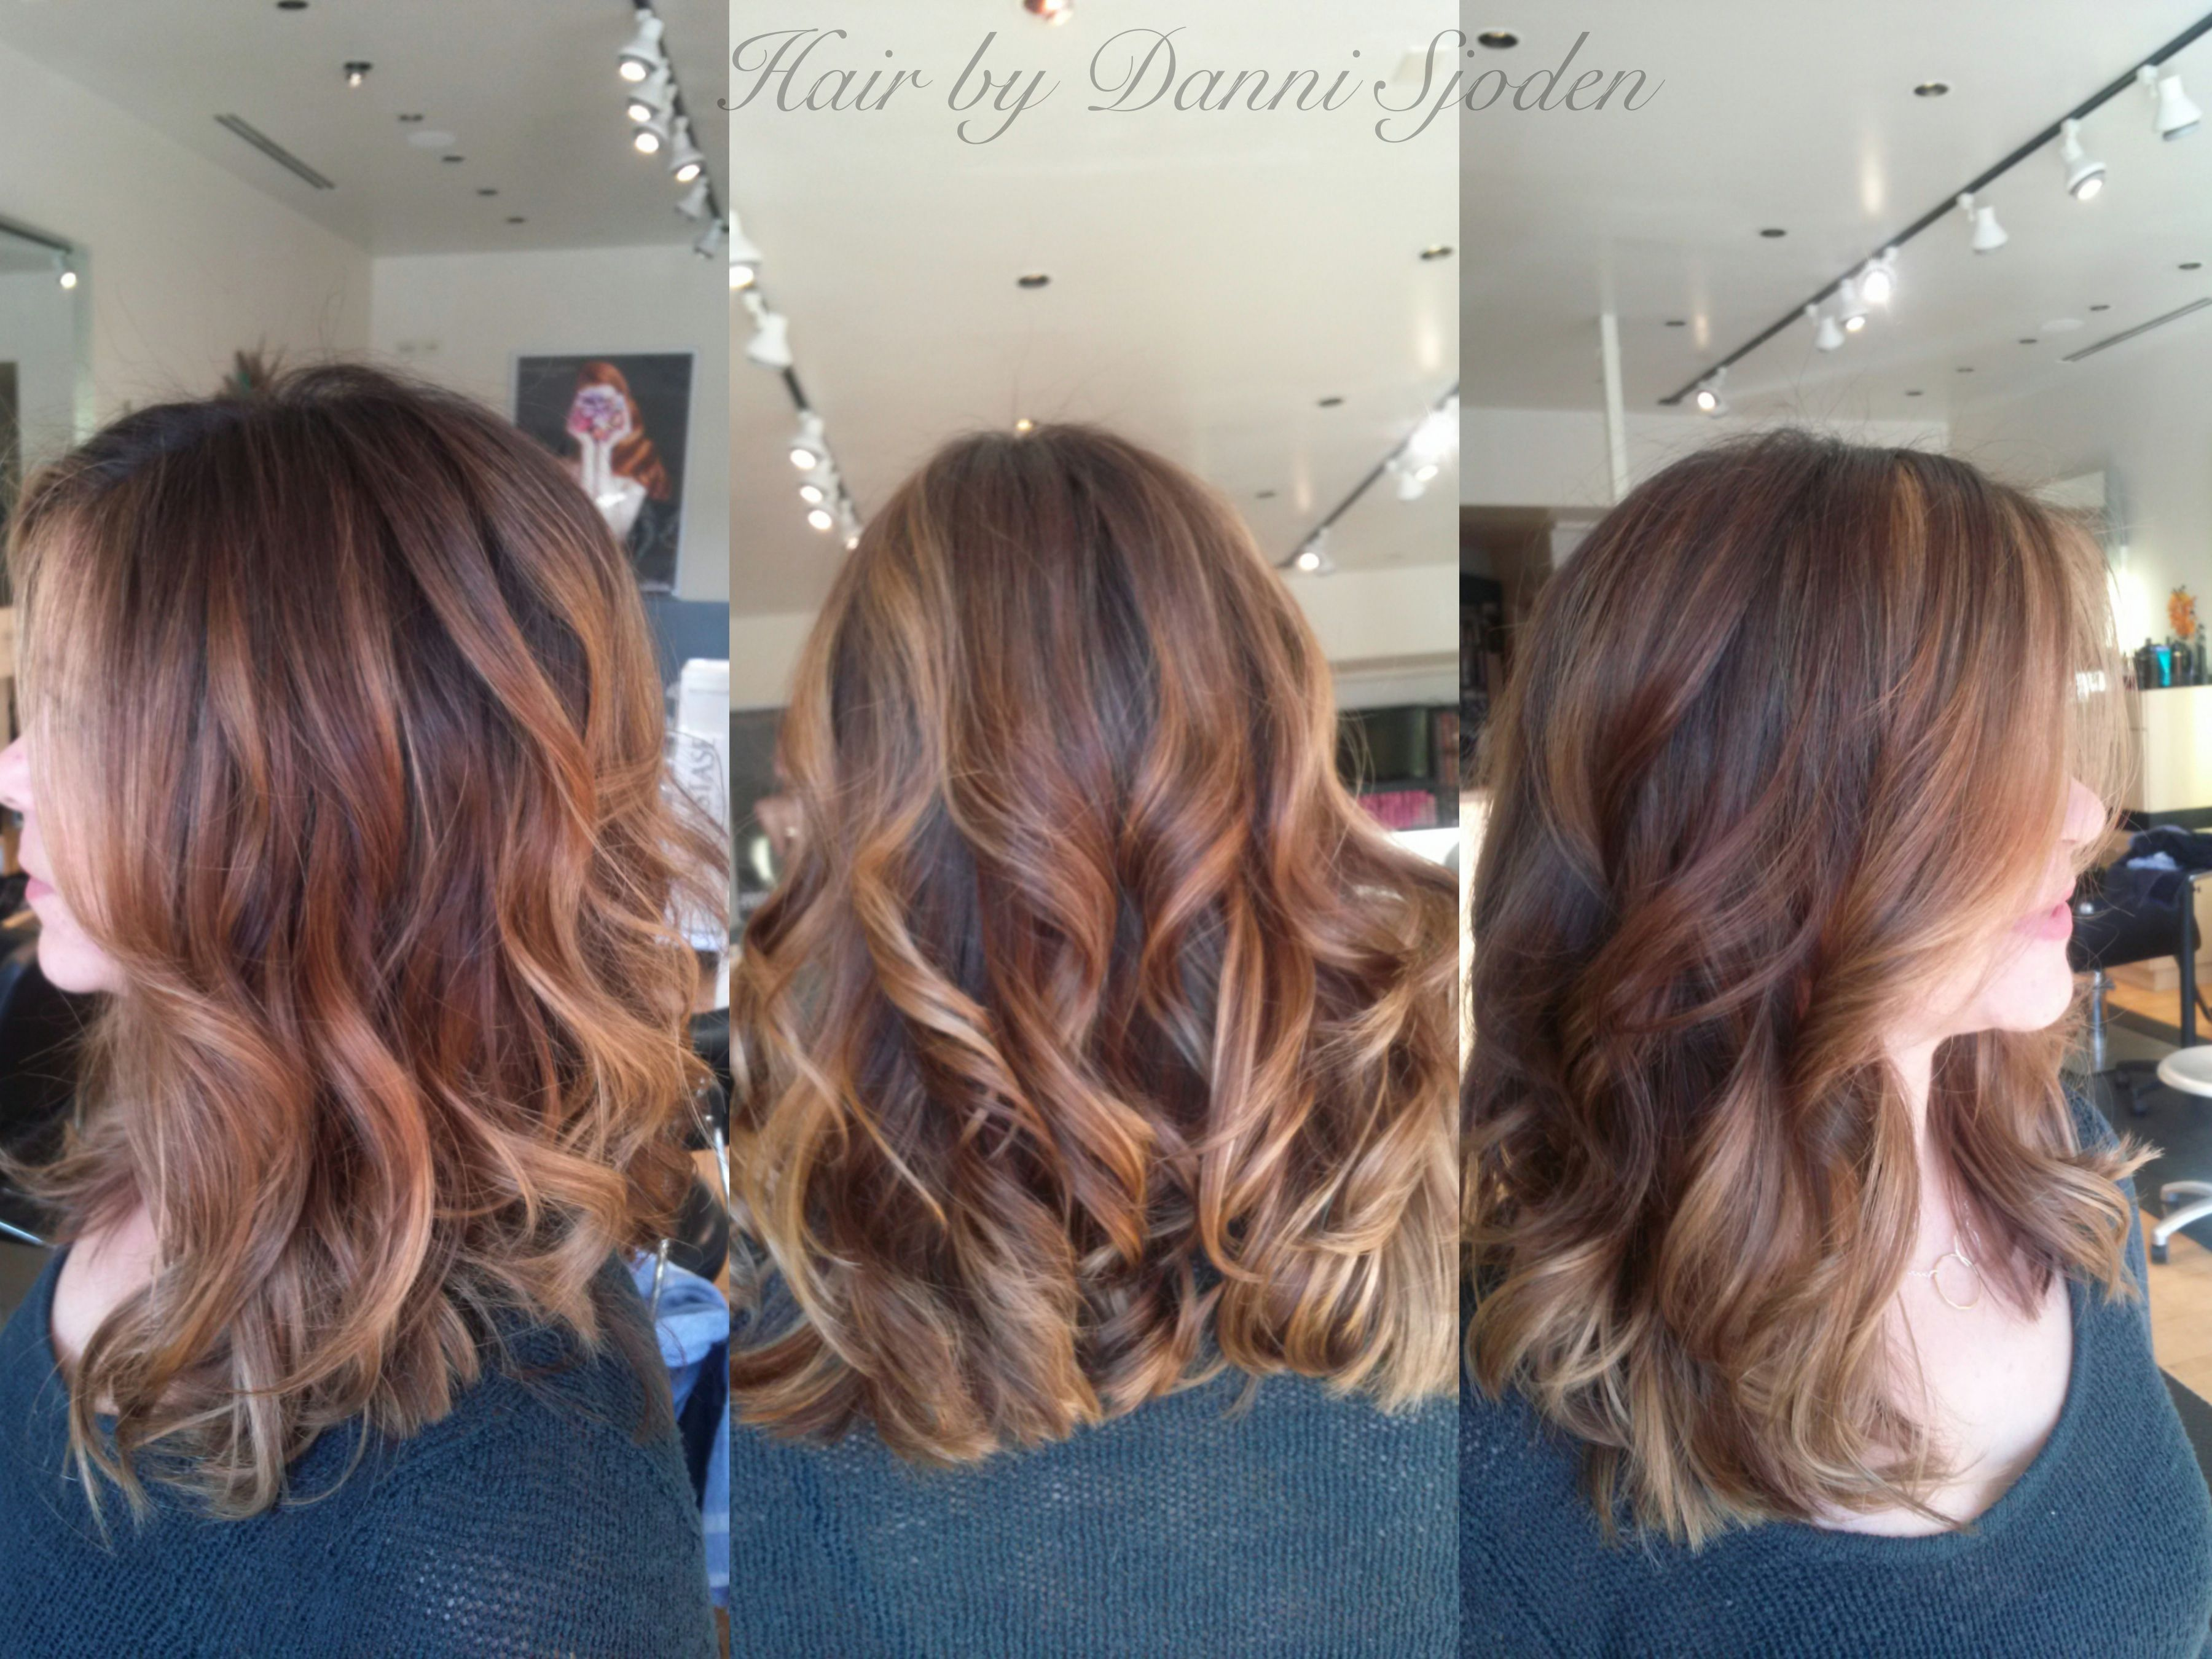 Balayage Ombre39 On Shoulder Length Hair Hair By Danni